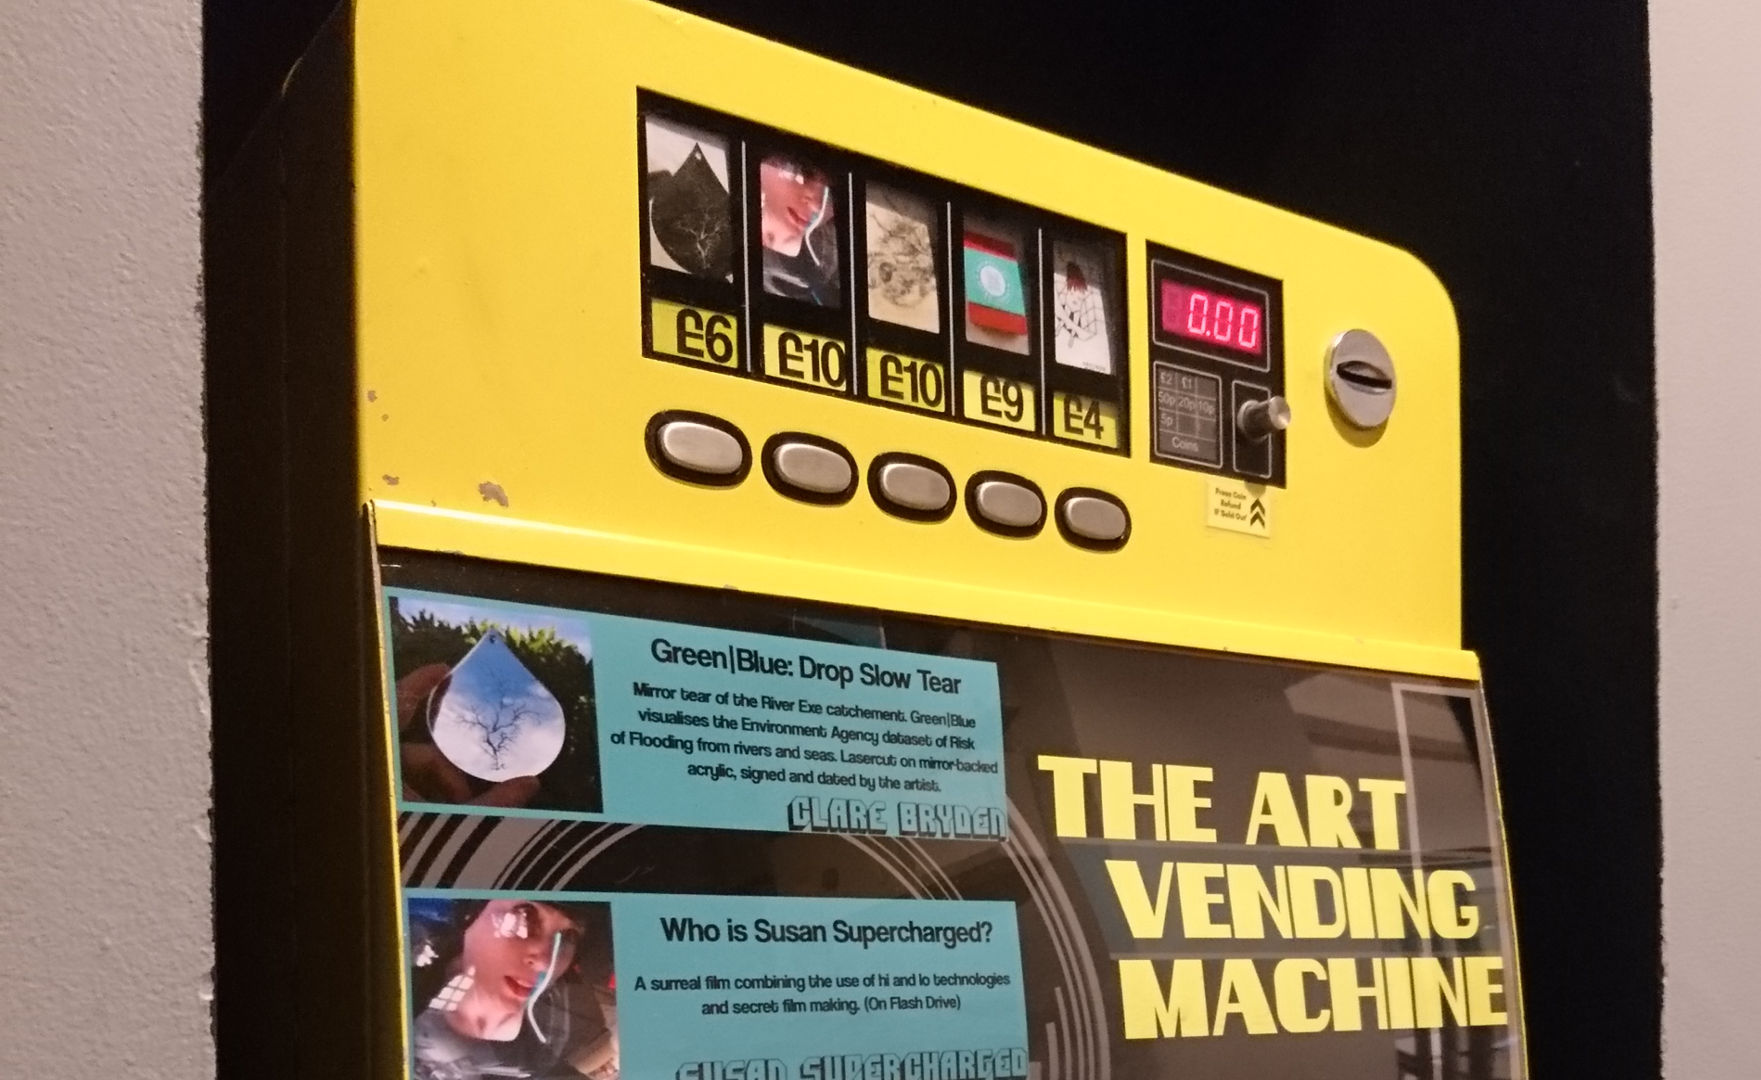 The Art Vending Machine, November 2017